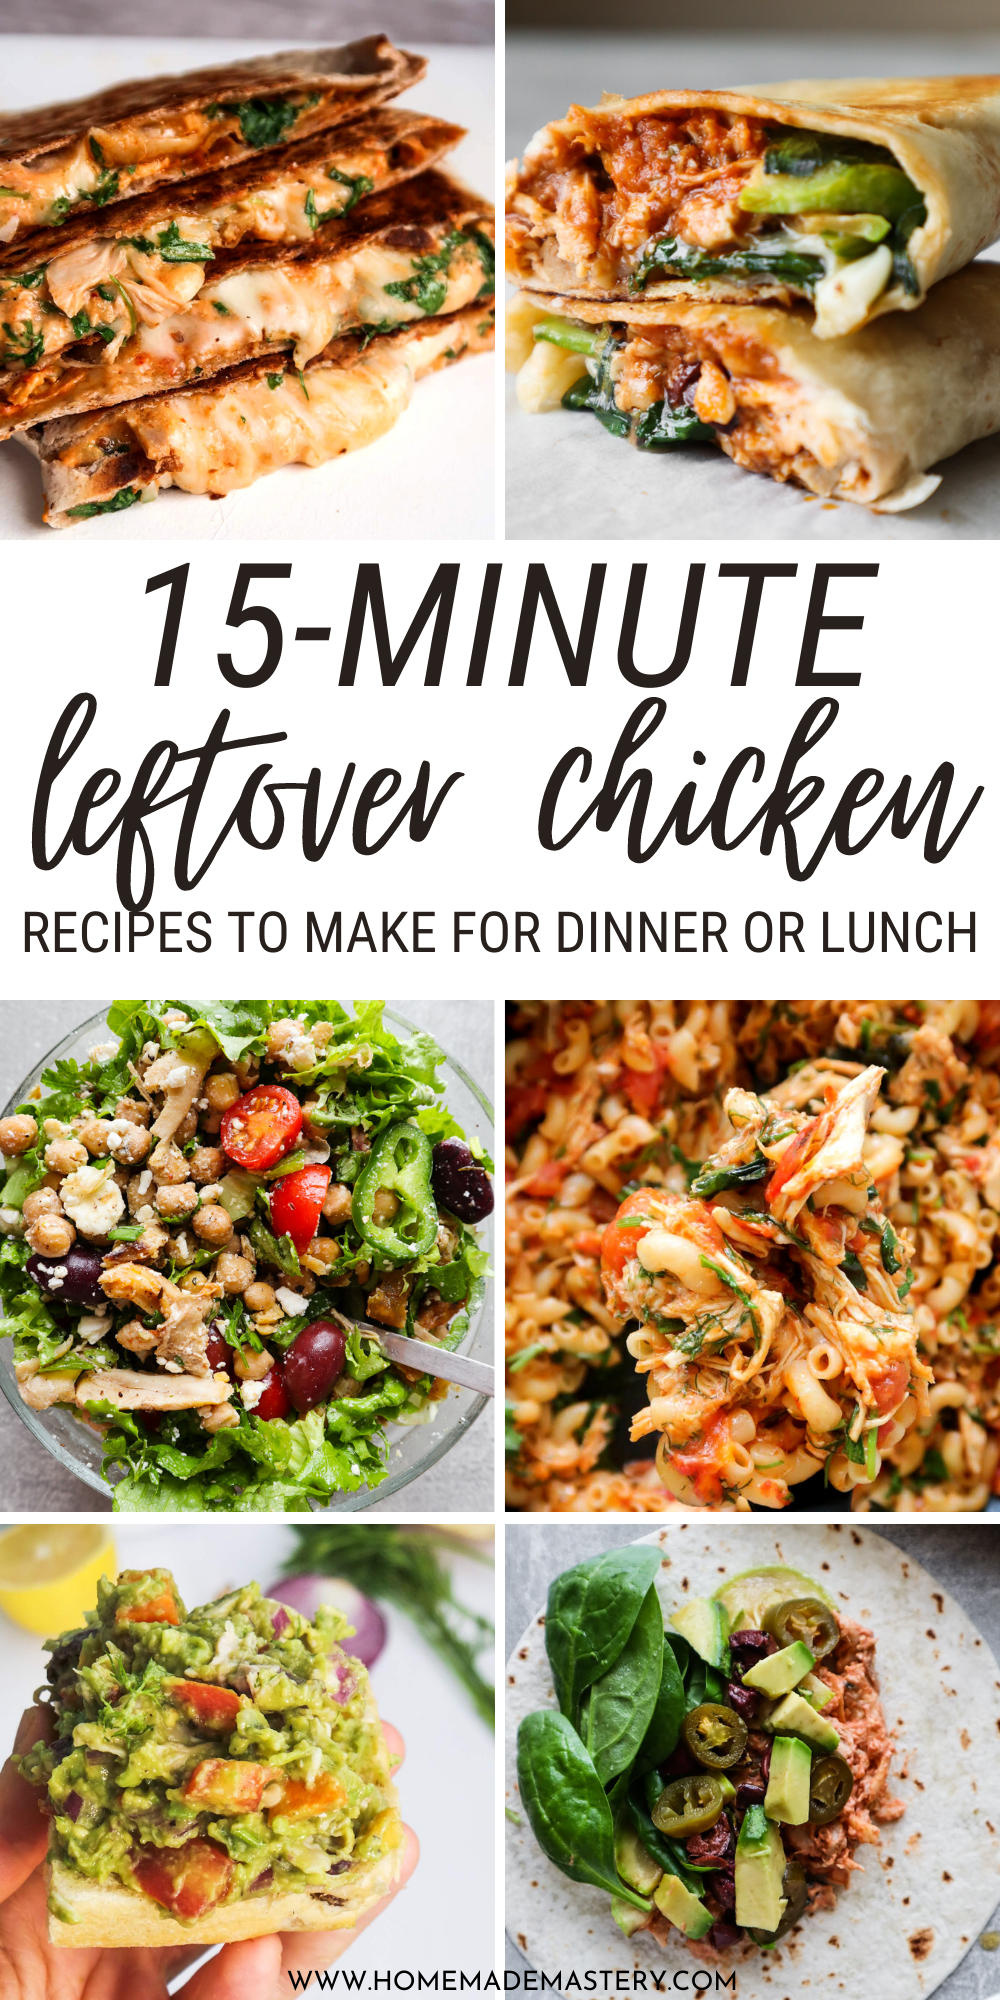 Make tasty chicken dinner in 10-20 minutes using rotisserie chicken or leftover shredded chicken! These super easy leftover chicken recipes are absolutely delicious, most of them also quite healthy and you'll want to make them again and again and again.